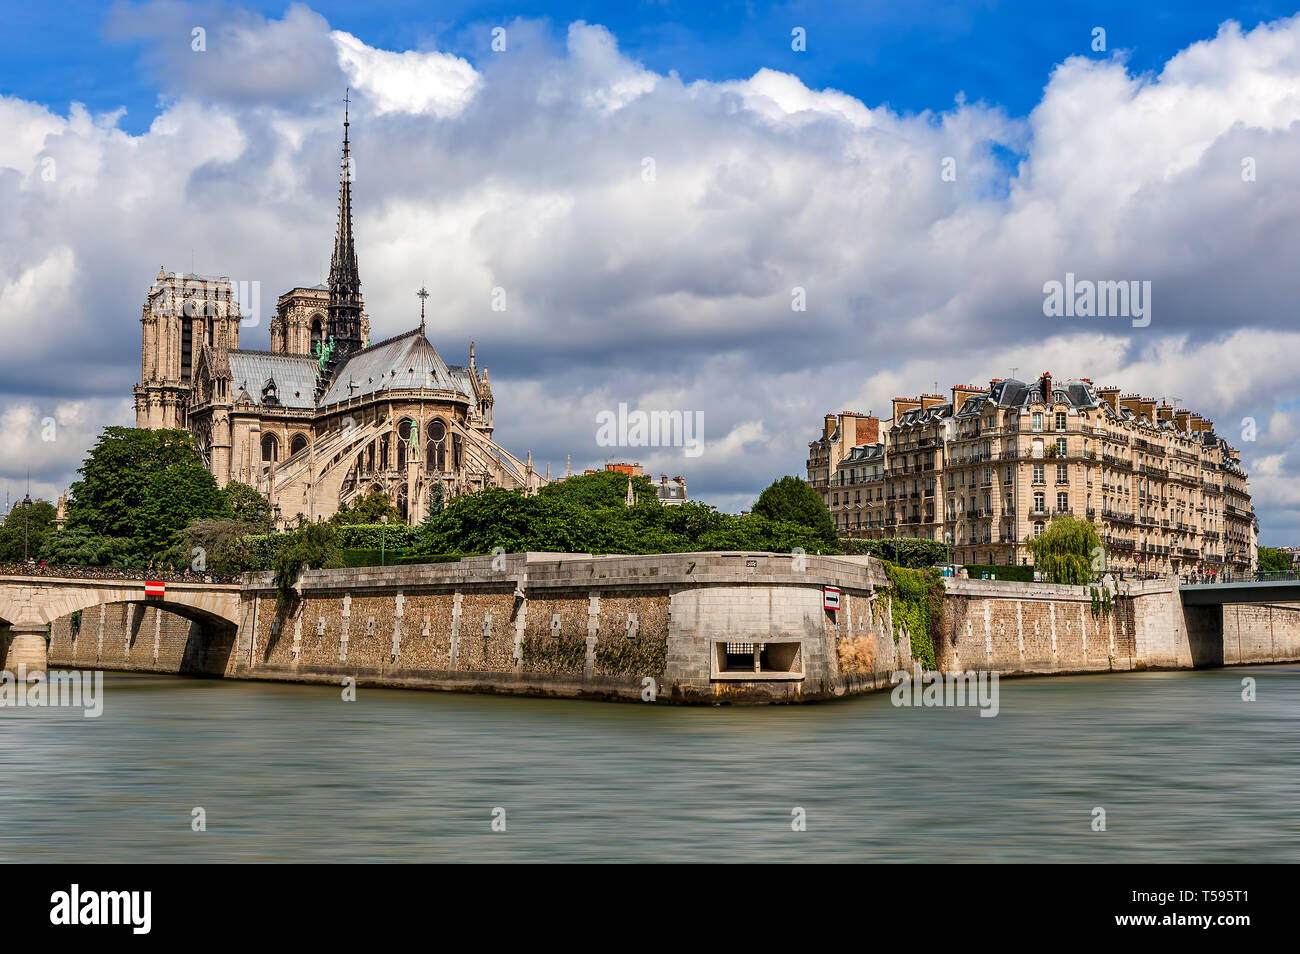 Famous Notre-Dame de Paris cathedral and typical Parisian building under beautiful sky as seen from Seine river. - Stock Image